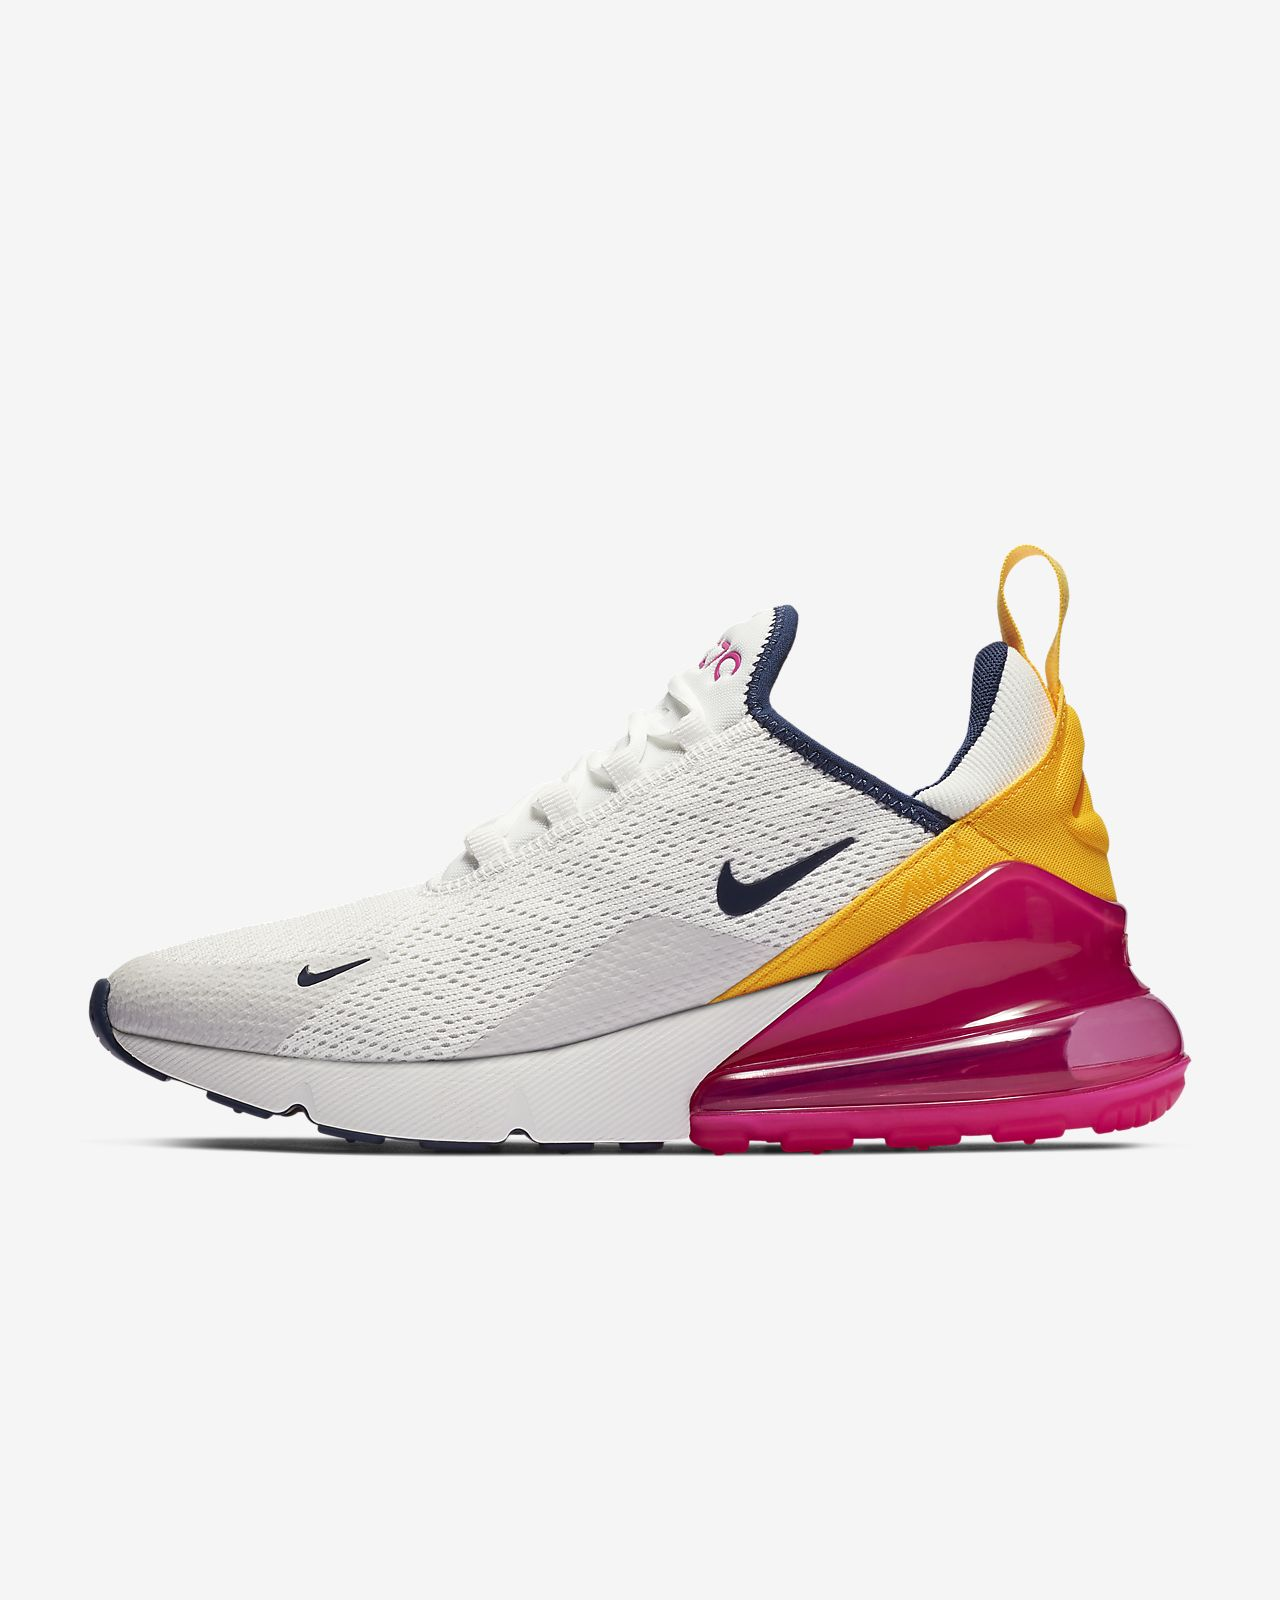 big sale 0c4d2 058bd Nike Air Max 270 Premium